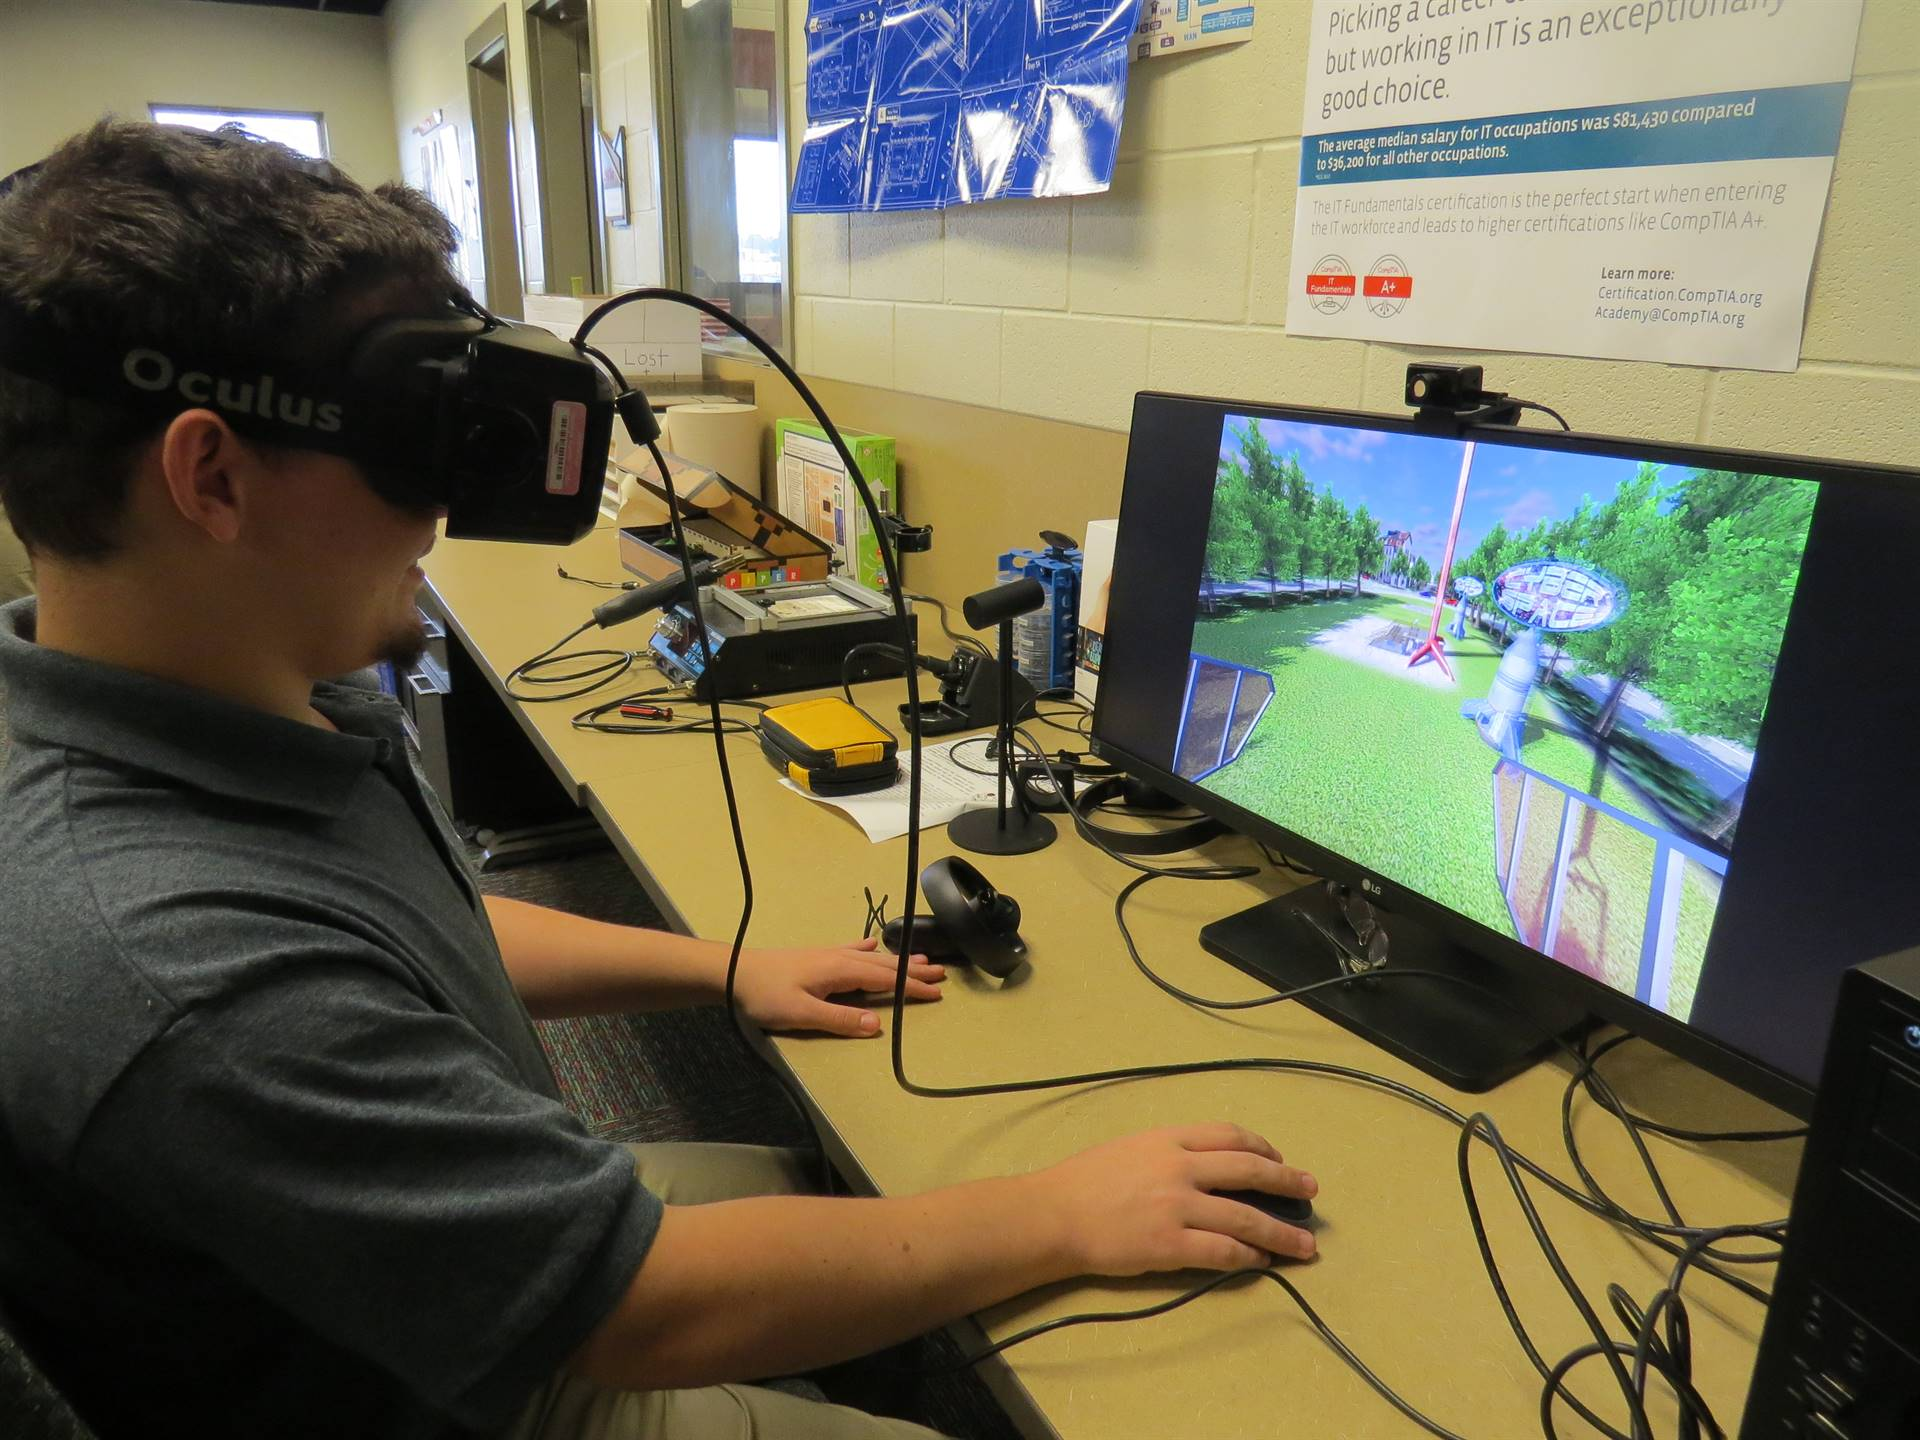 Male student working with virtual reality headset on